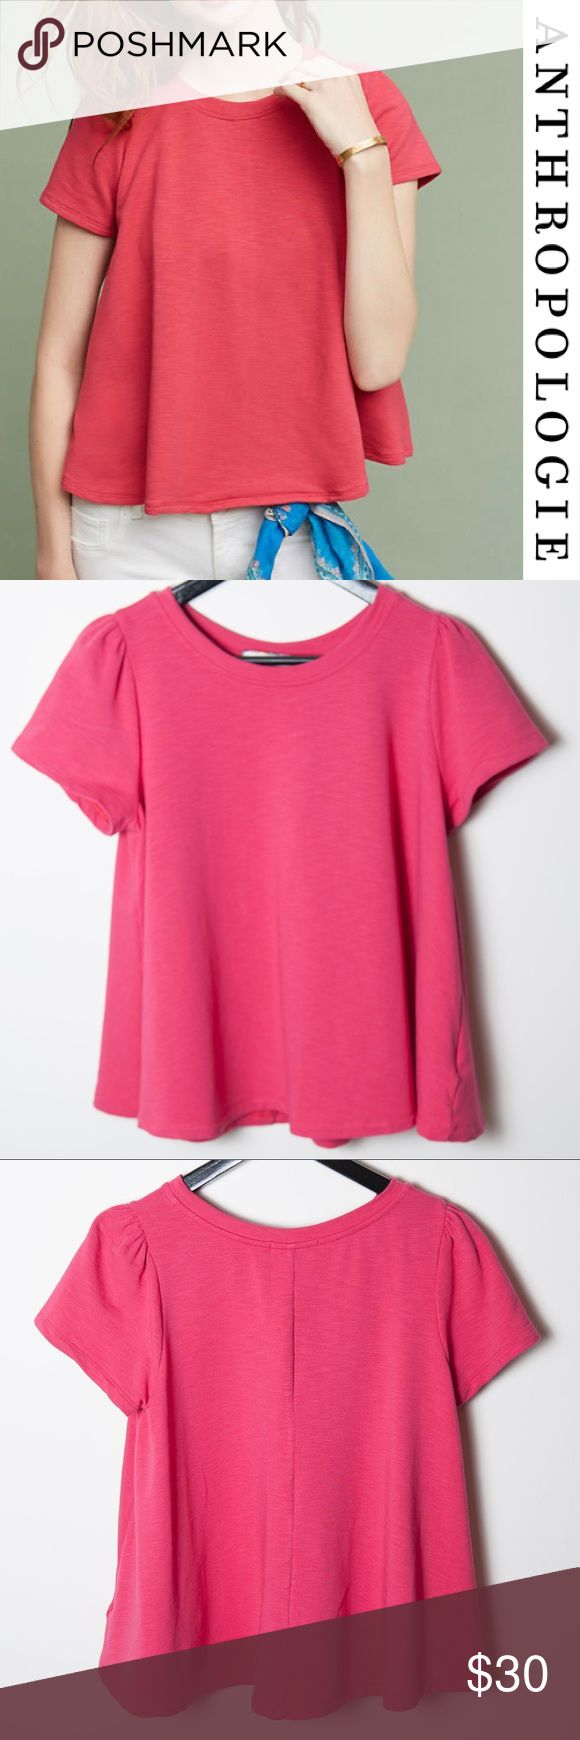 Eri + Ali Pink Short Sleeve Top Anthropologie Rose Great preloved condition Eri + Ali Rose Westward Top from Anthropolgie. Size Medium. A classic tee made of as-soft-as-can-be cotton with puff sleeves and a swing silhouette is perfect for a breezy spring day spent outdoors. Anthropologie Tops Blouses